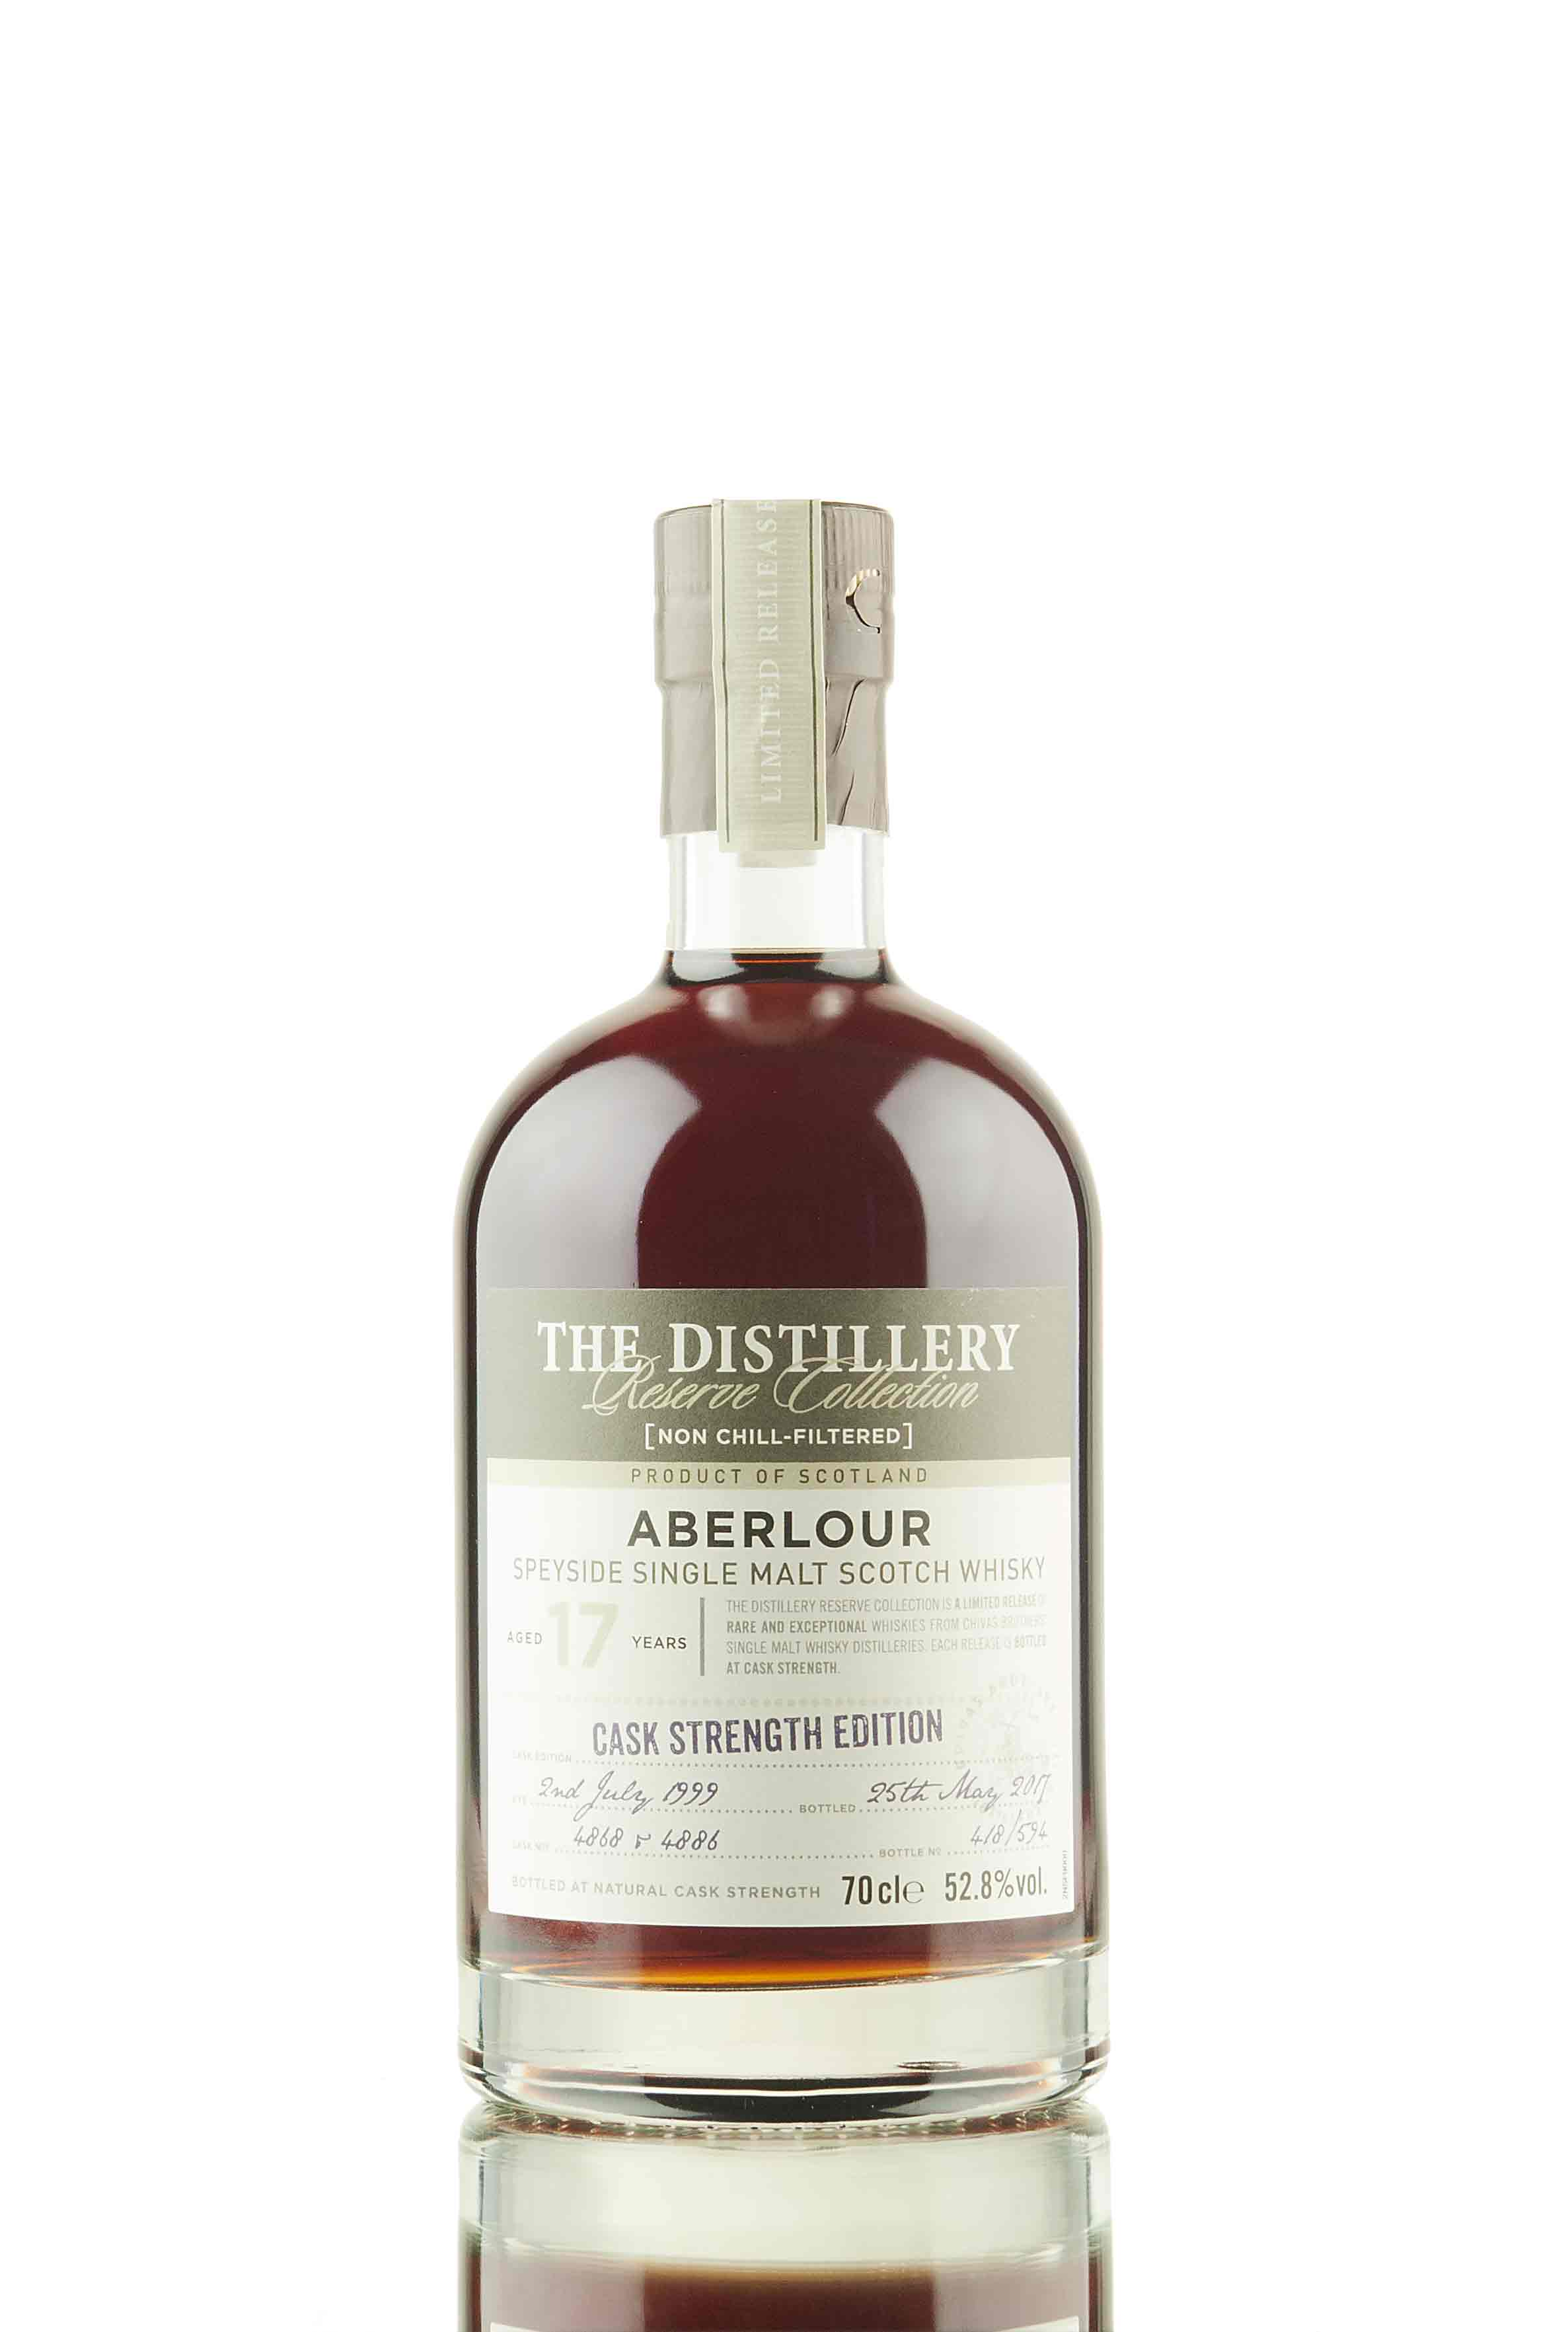 Aberlour 17 Year Old - 1999 | Cask Strength Edition